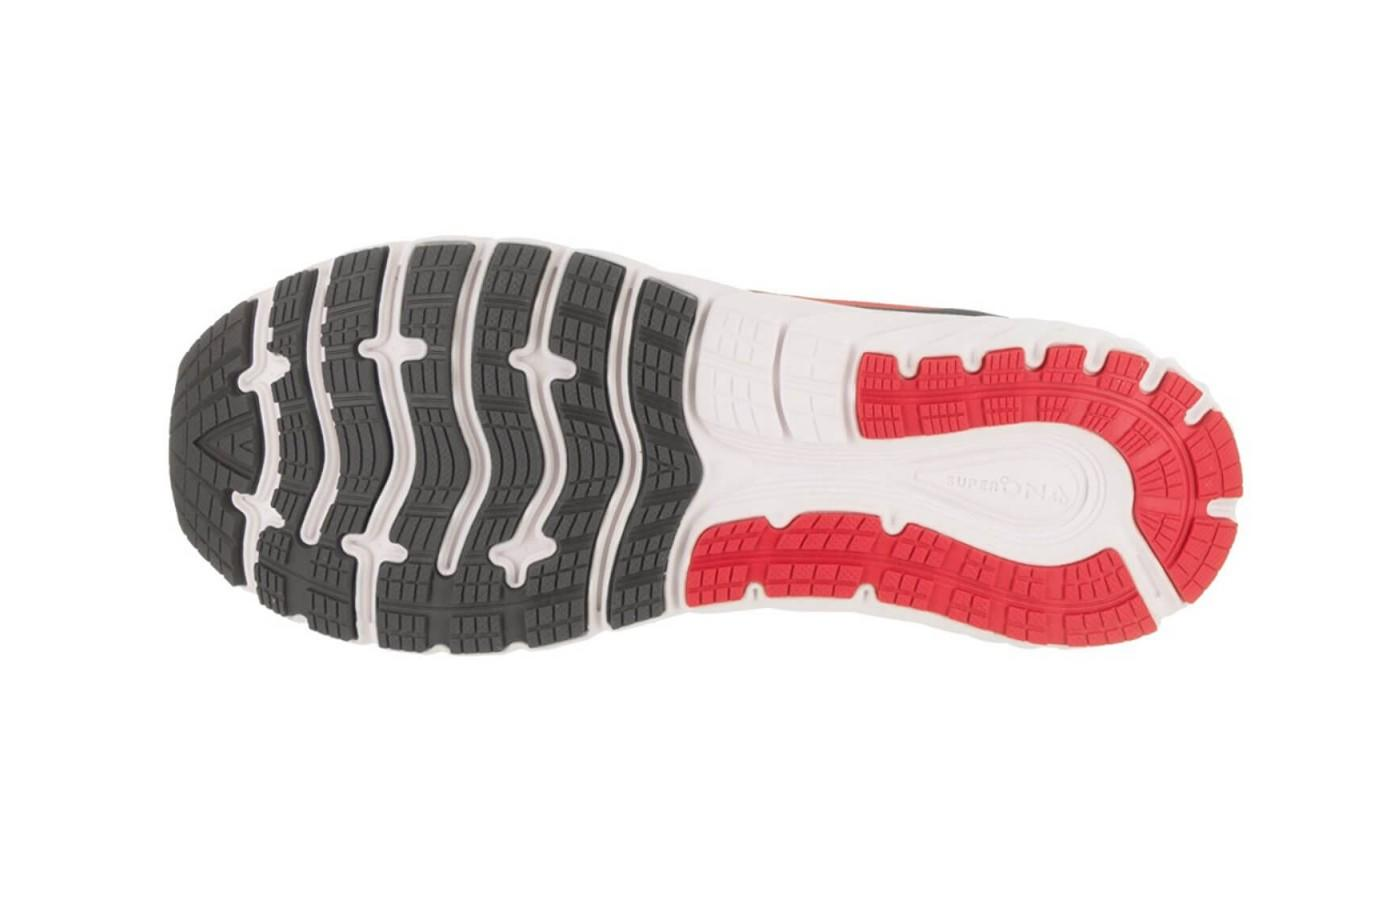 the outsole provides great traction on roads and other smooth surfaces